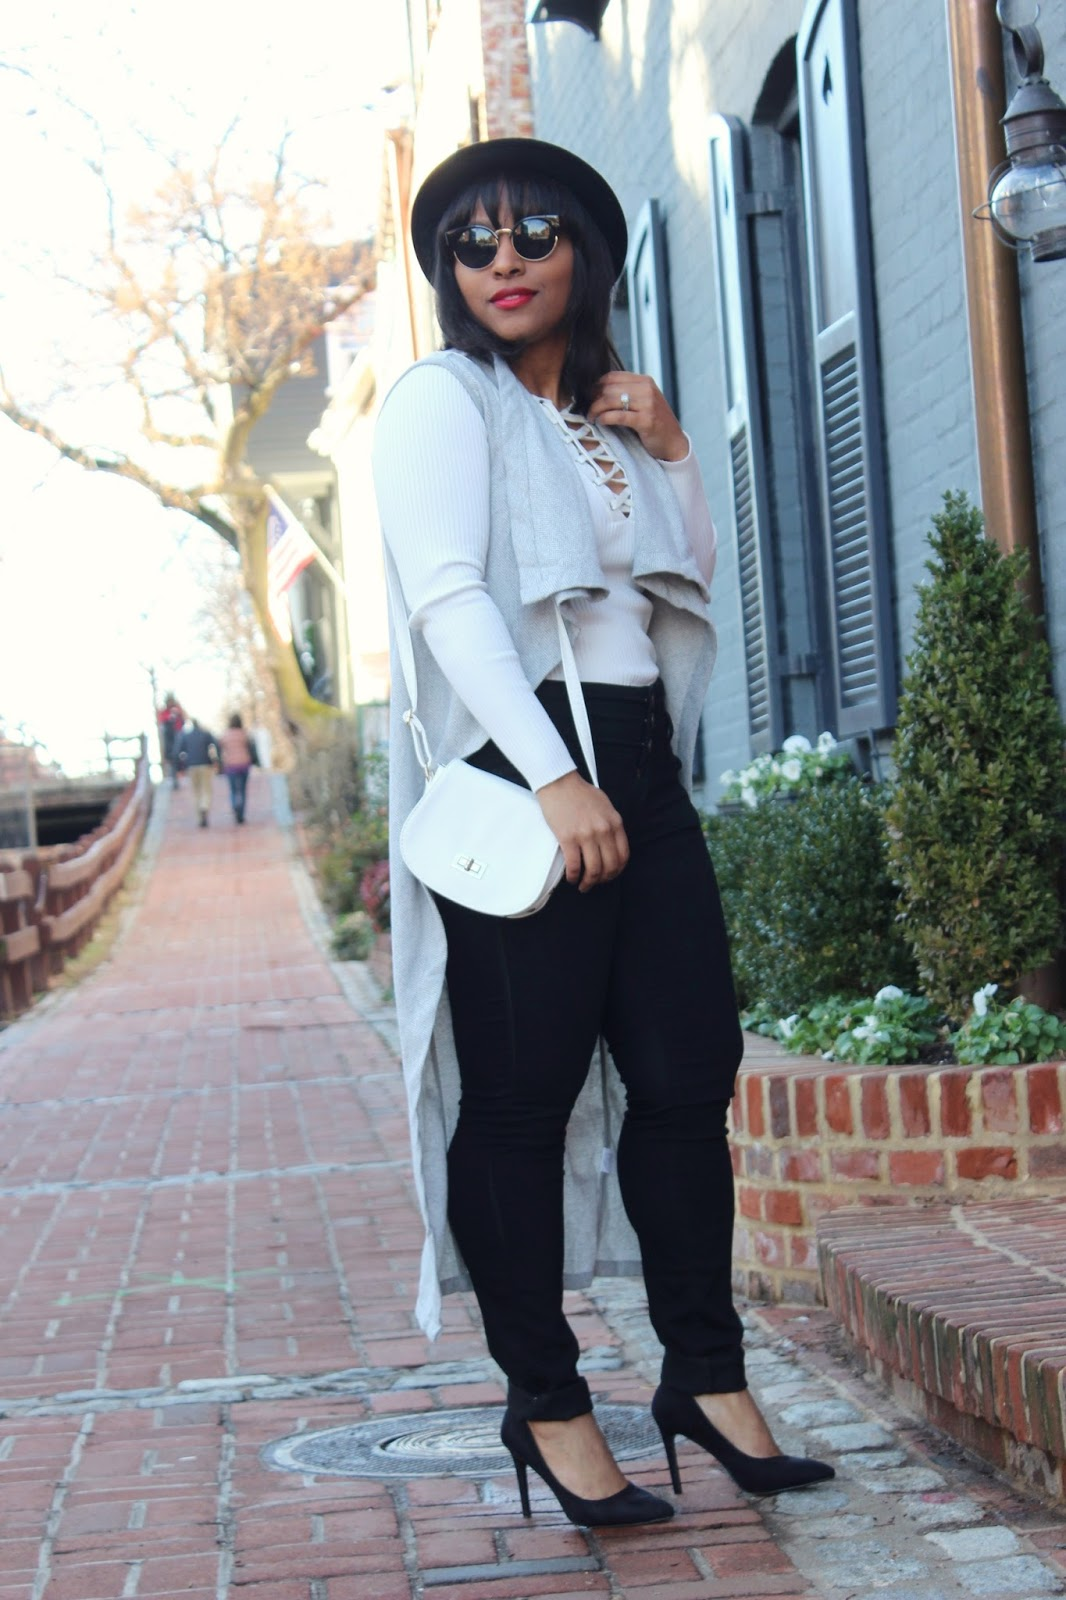 boost your style, new wardrobe, style confidence, cardigan, lace up sweater, georgetown, brick floor